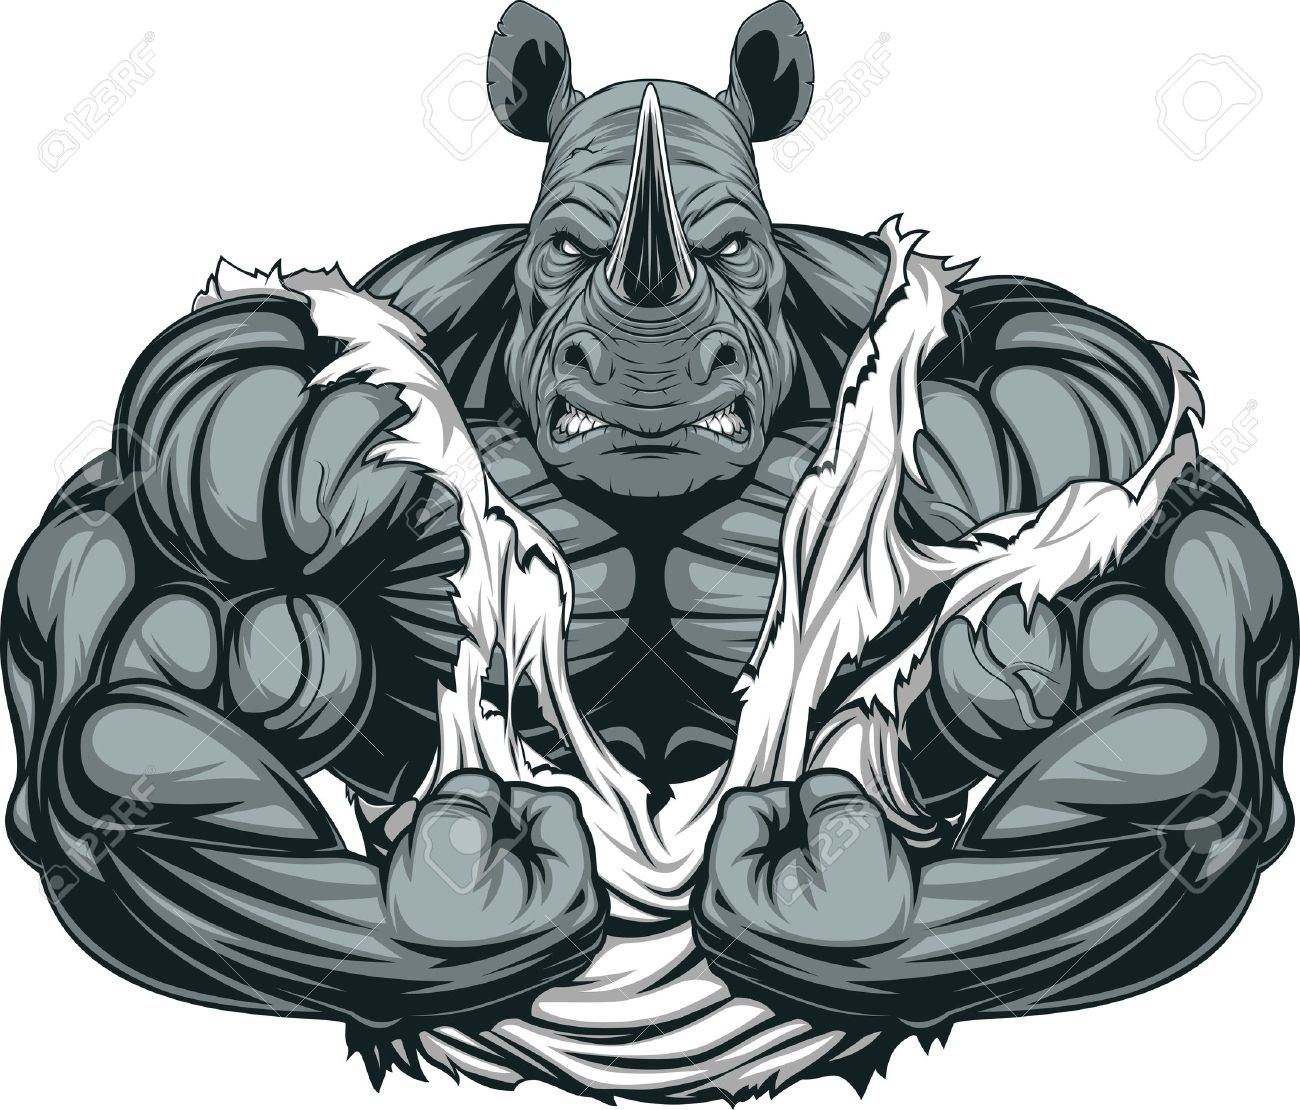 Vector illustration of a strong rhino with big biceps - 66812541